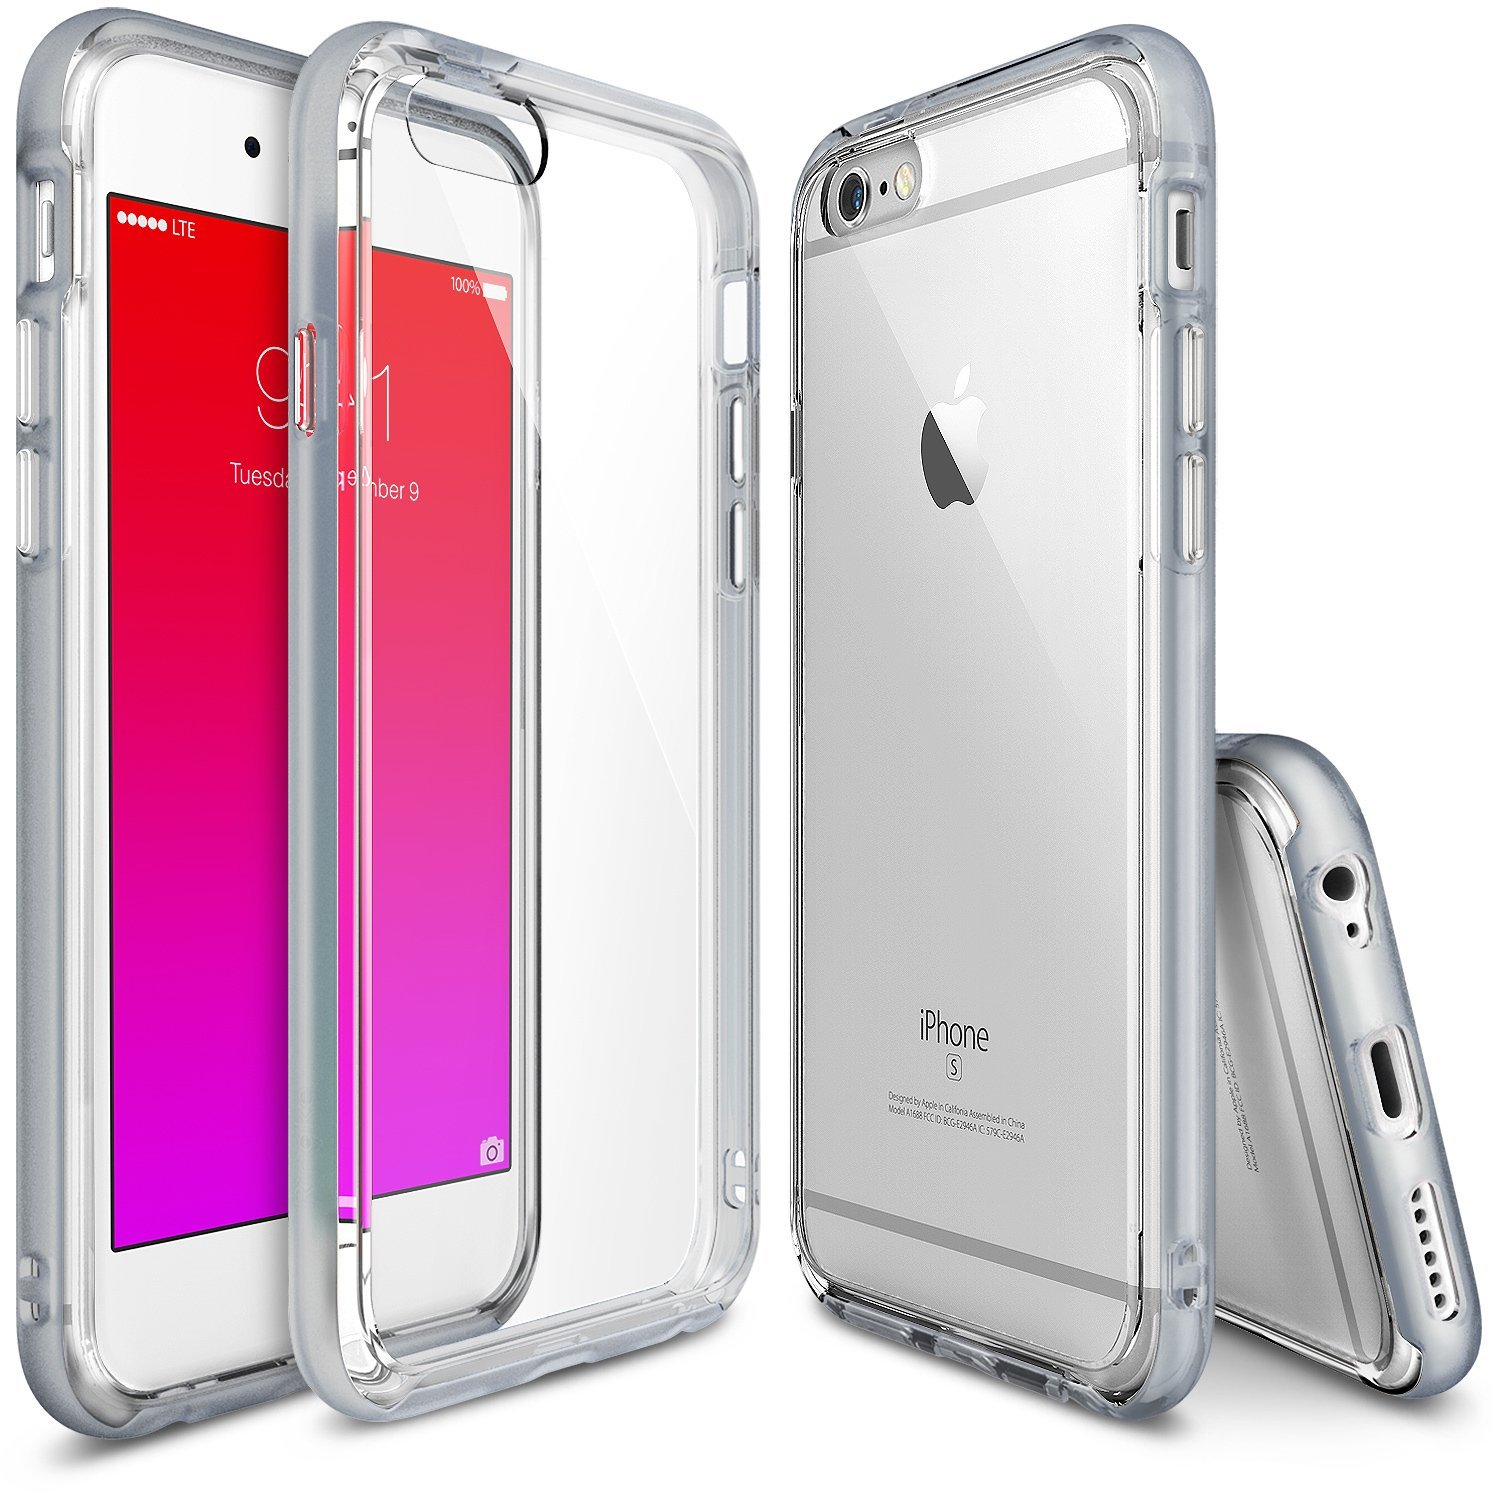 Iphone 6 6s Case Ringke Fusion Frame Dual Layered Lock It Cushion Lip Pen 5 Cindy Rose Tpu Bumper And Pc Frost Grey Drop Protection Clear Back Shock Absorption Protective